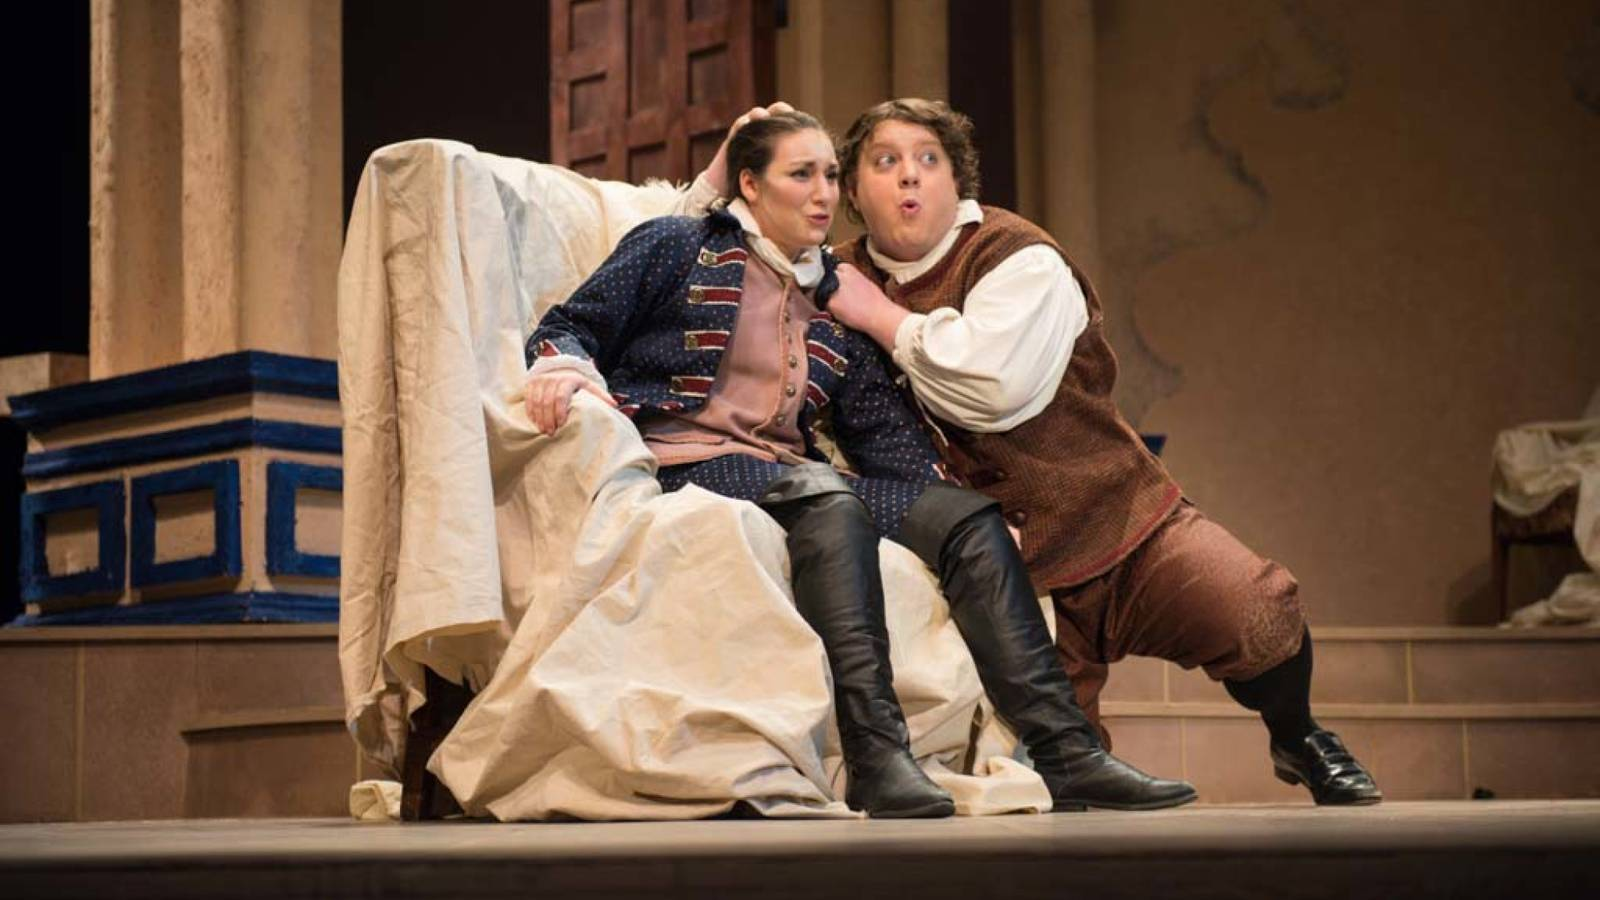 Scene in The Marriage of Figaro.